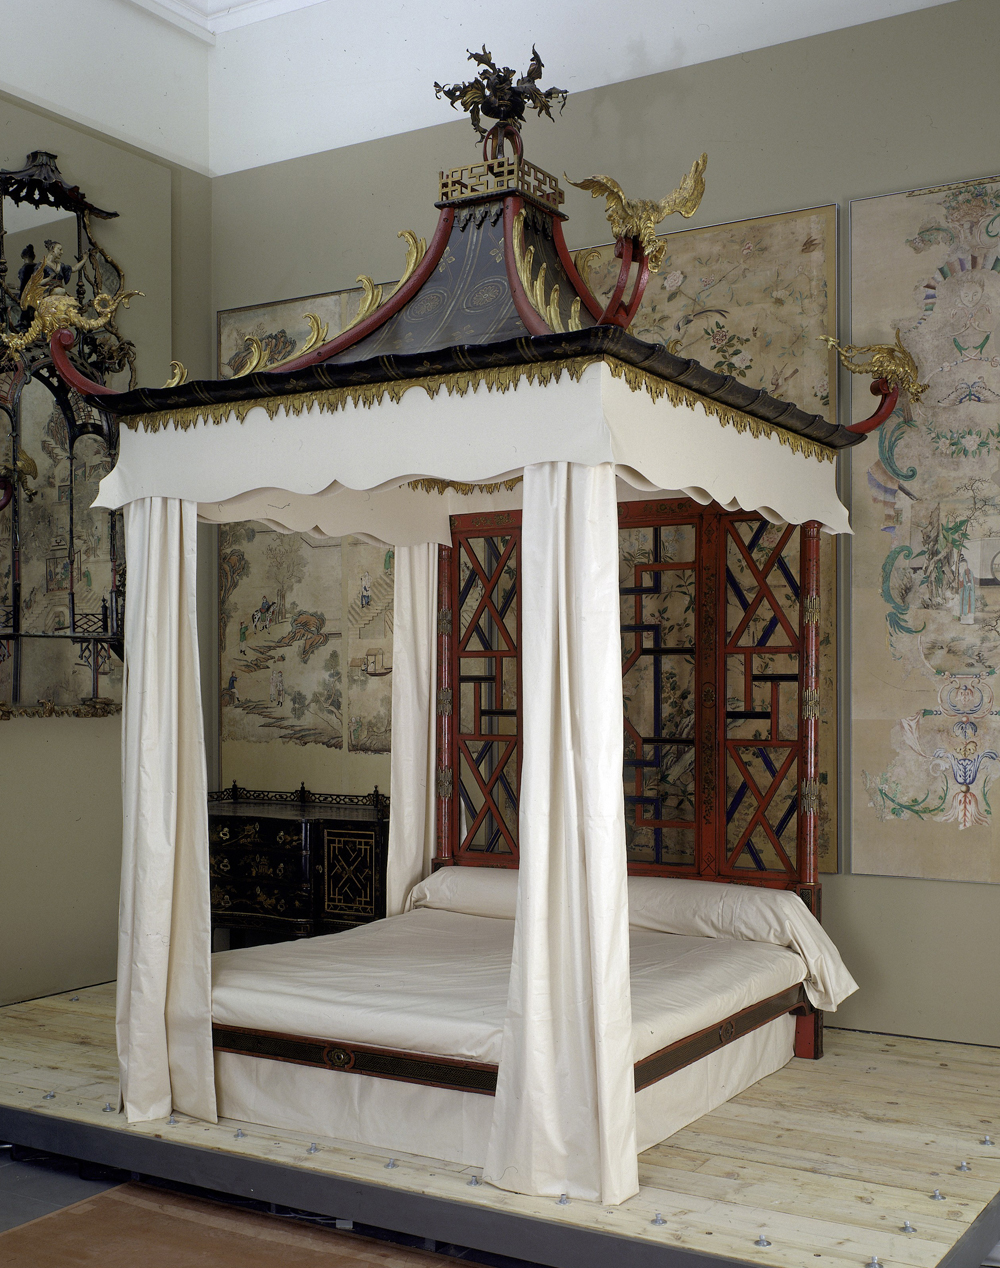 The Badminton Bed John Linnell William About 1754 Museum No W 143 1 To 26 1921